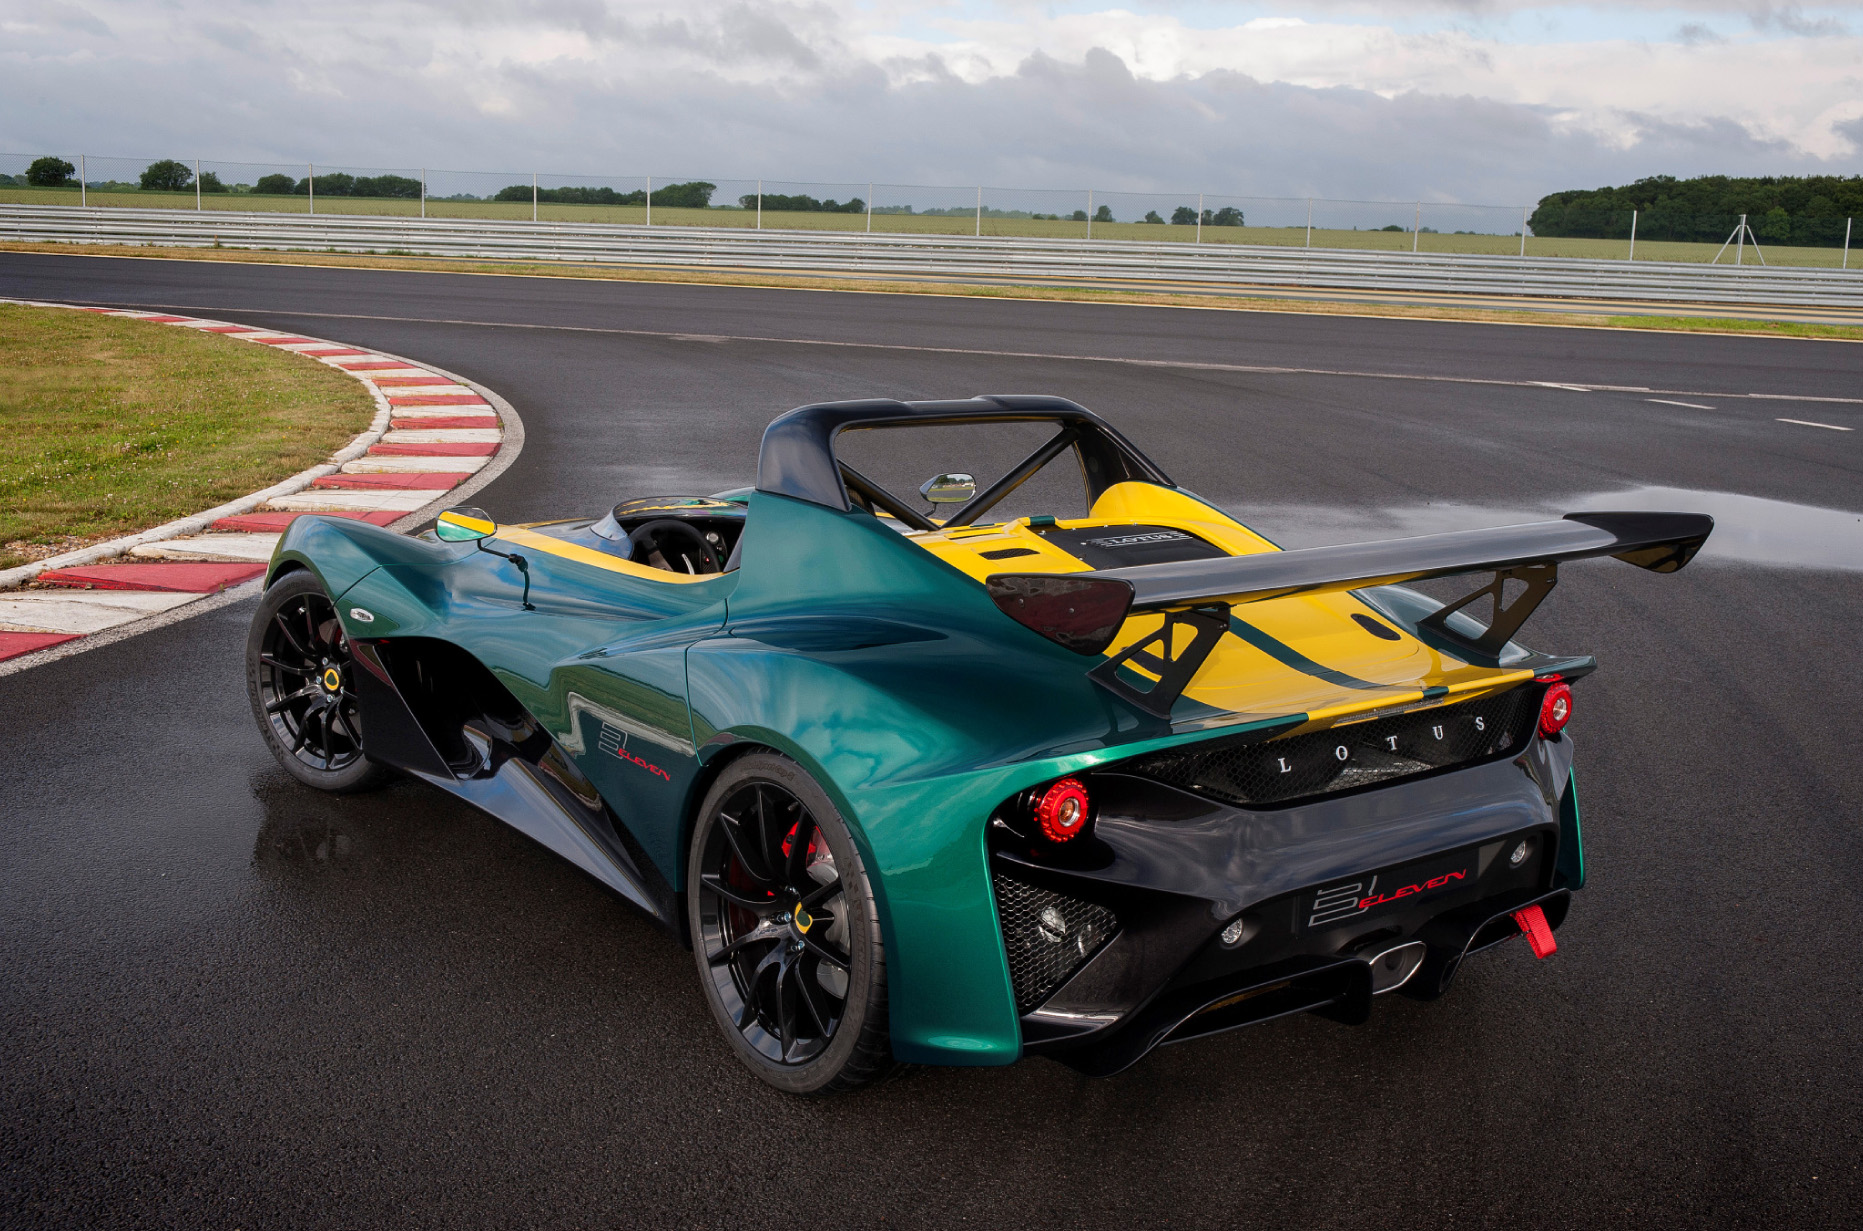 Lotus 3-Eleven launches at Goodwood Festival of Speed | SELOC